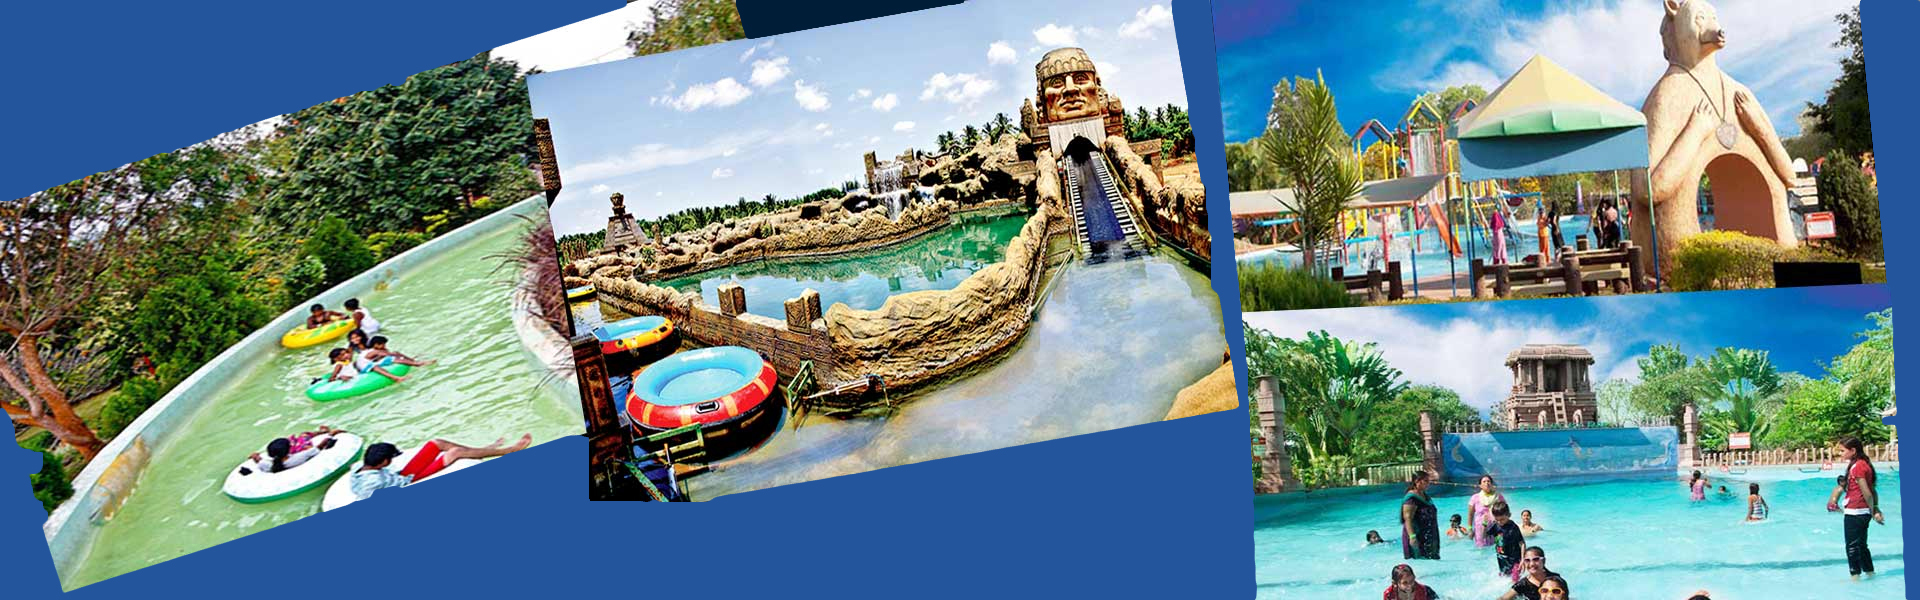 Poolmasters Water theme Park Collage